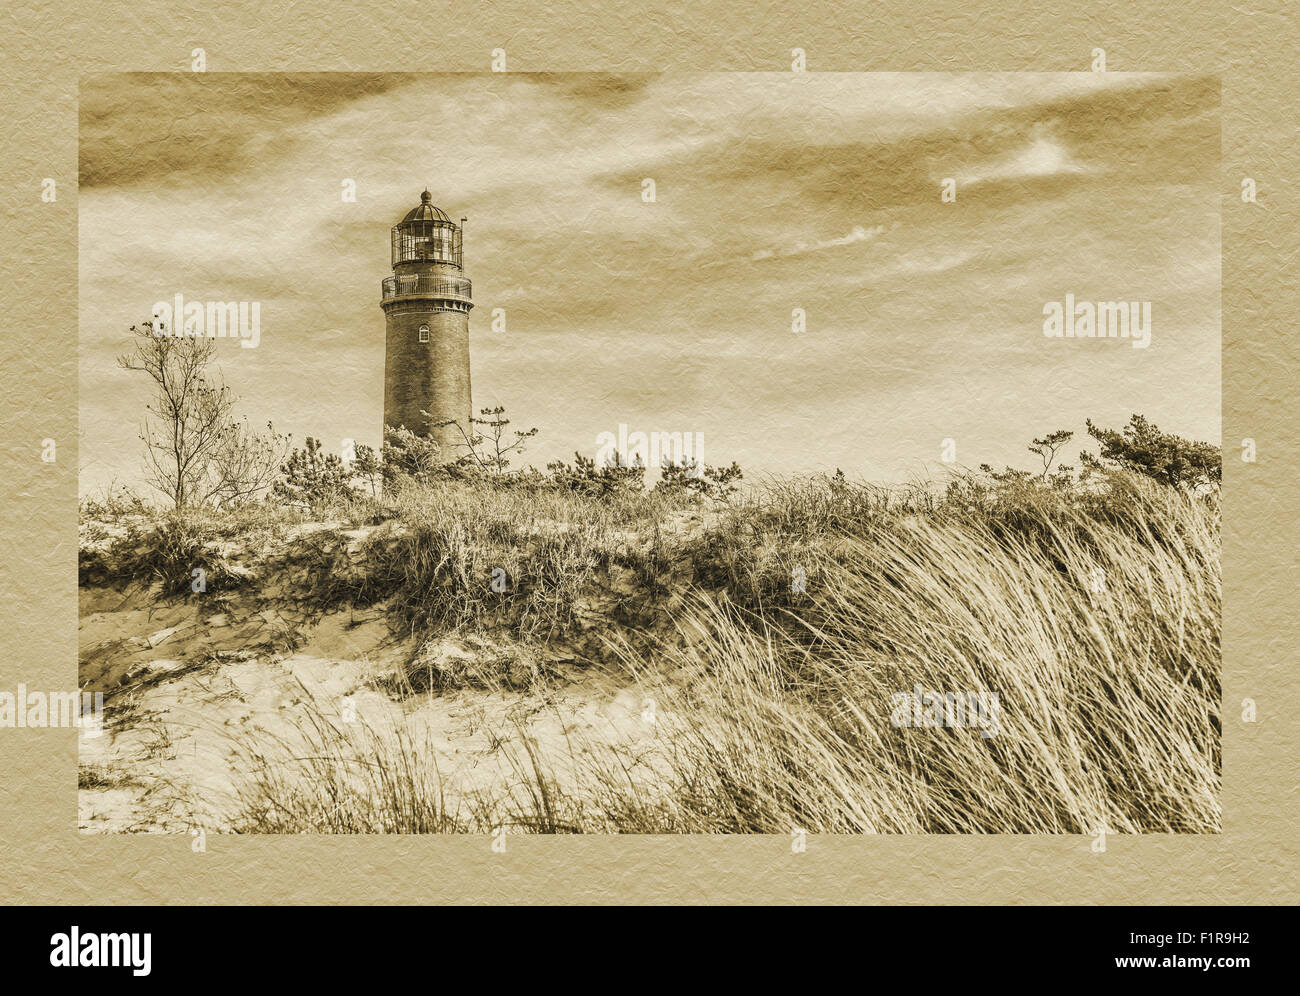 The lighthouse Darsser Ort, Fischland-Darss-Zingst, Baltic Sea, Mecklenburg-Western Pomerania, Germany, Europe - Stock Image